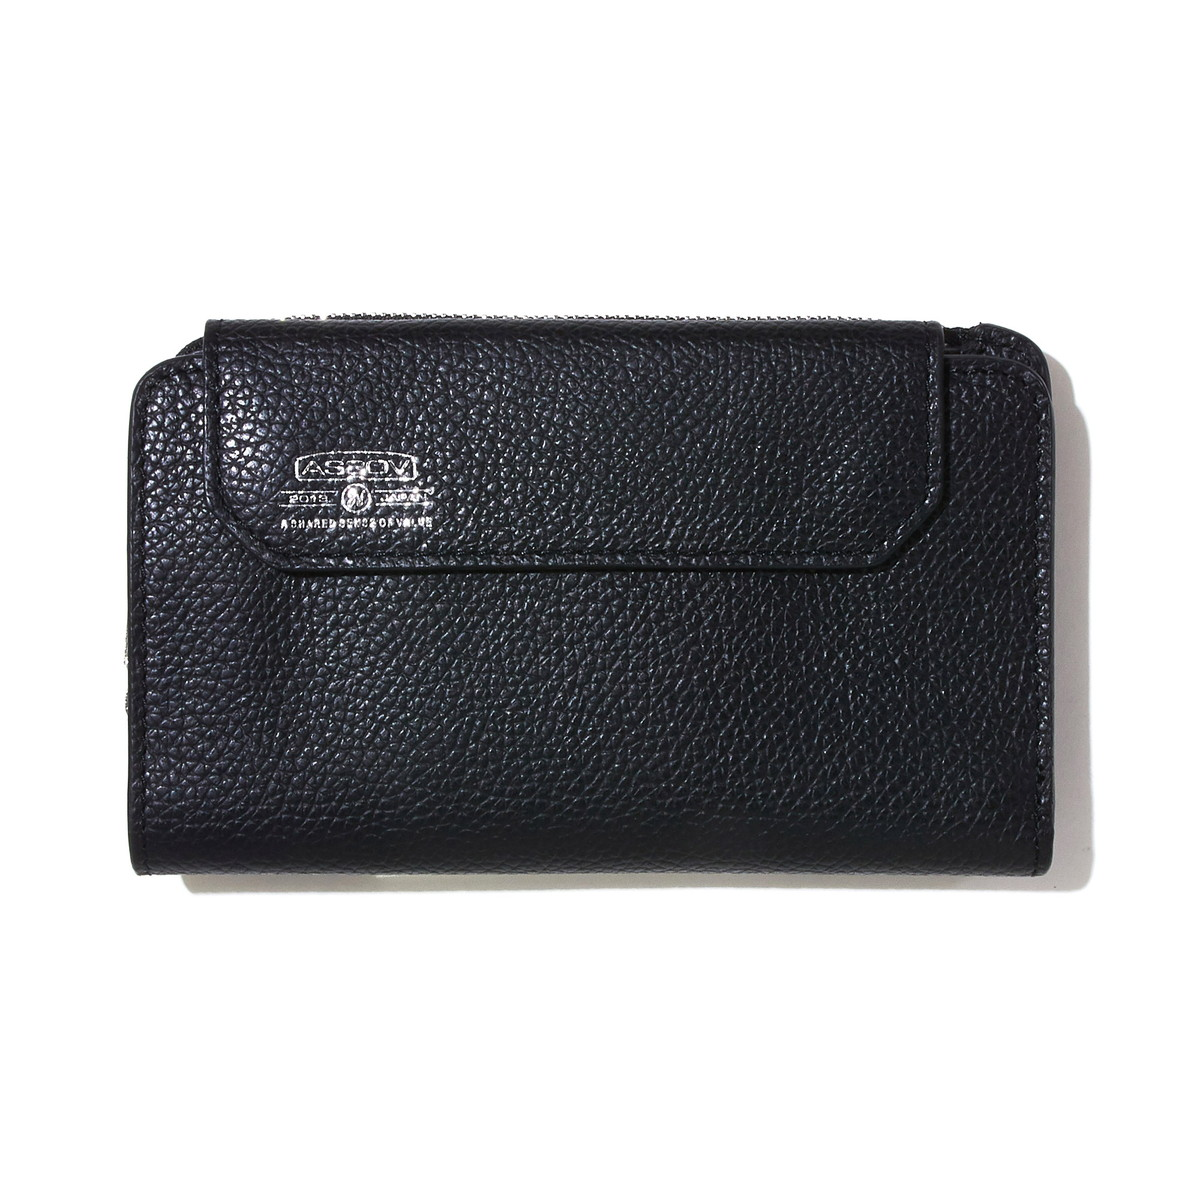 AS2OV (アッソブ) レザー 折財布 ショートウォレット SHRINK LEATHER MOBILE WALLET SHORT WALLET 081701